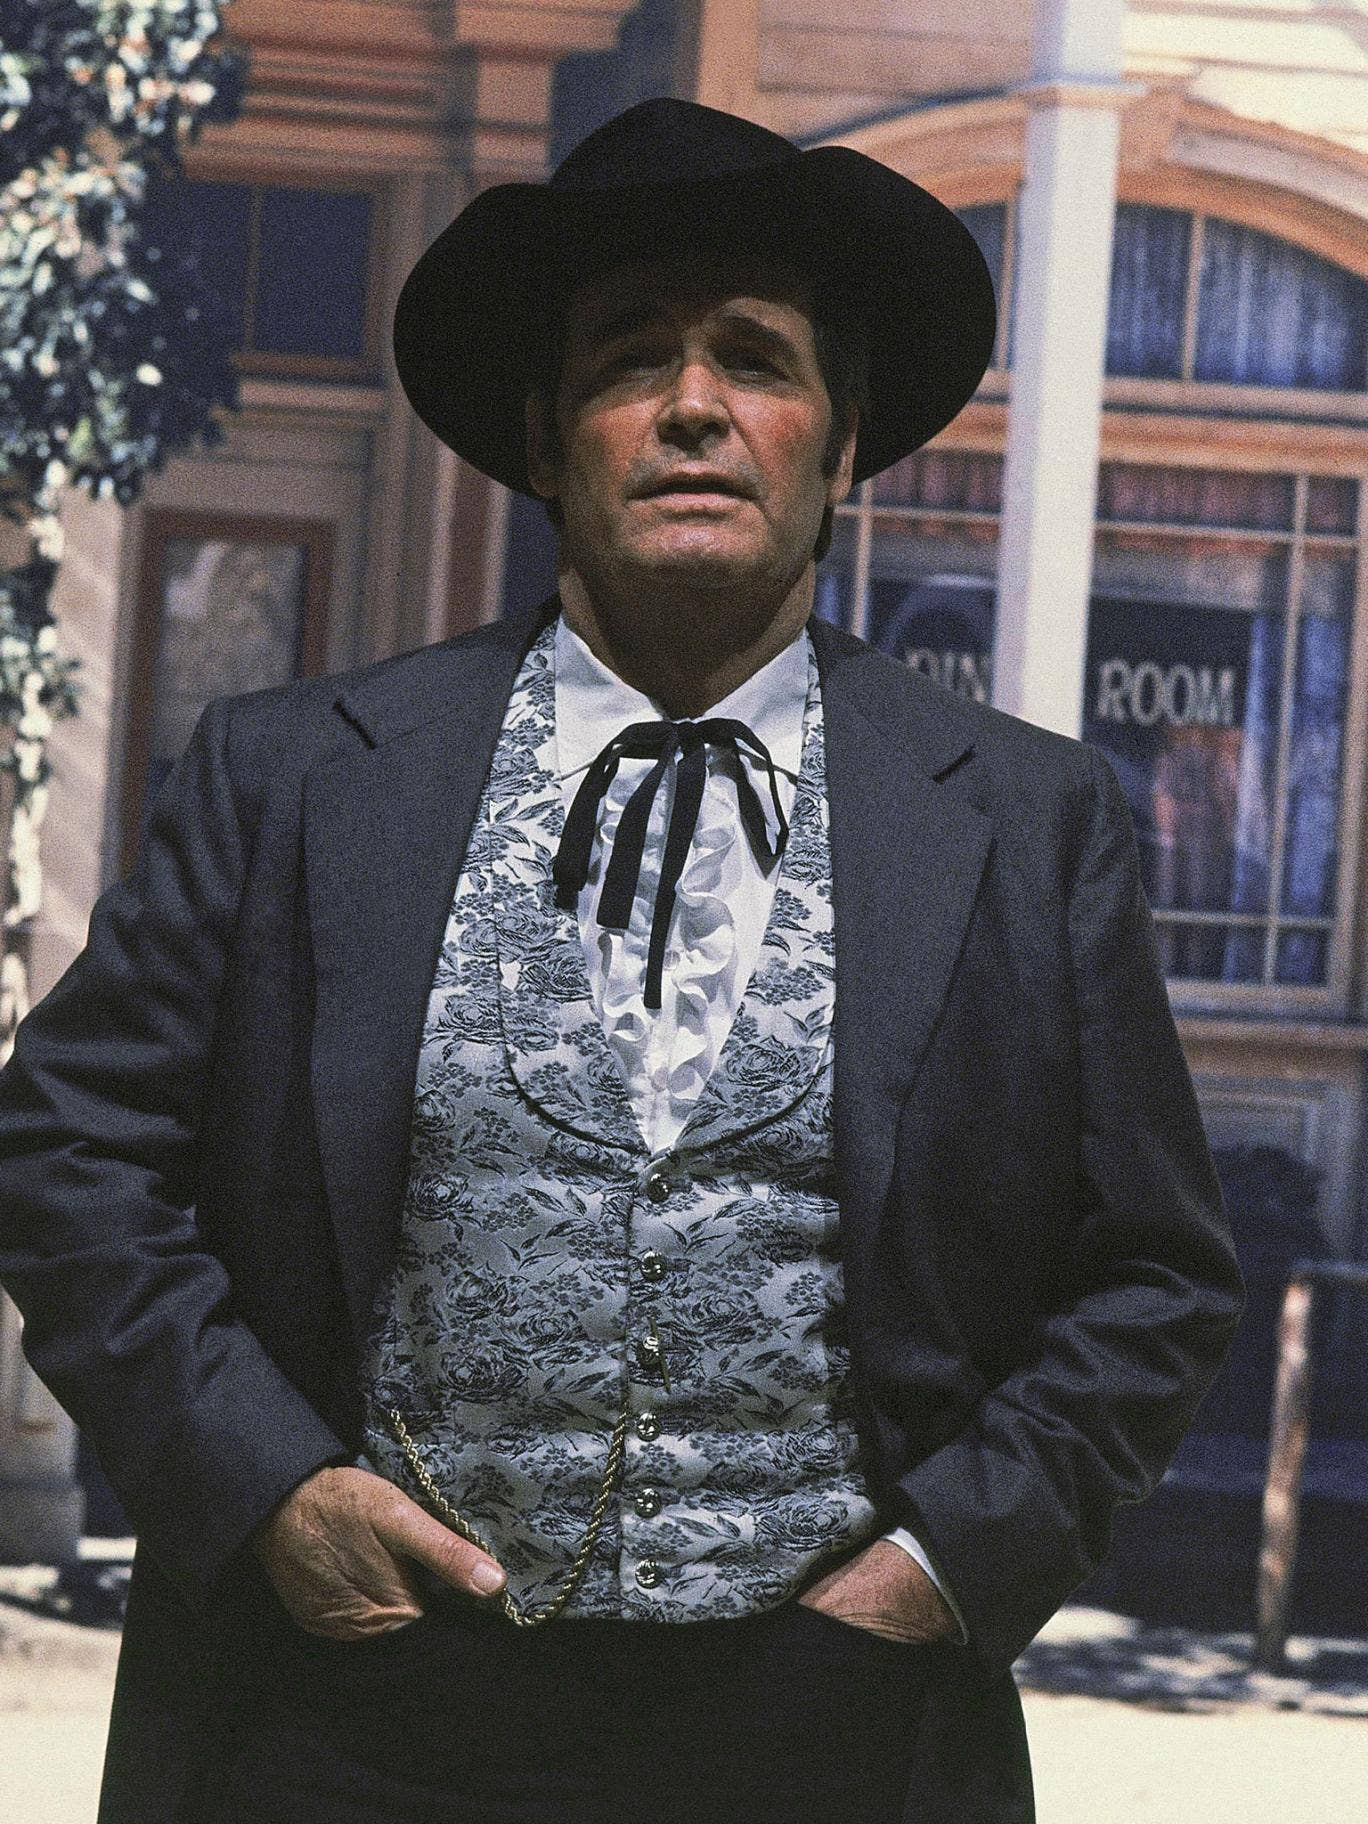 James Garner reprising the role of Bret Maverick for a television sequel series in 1982